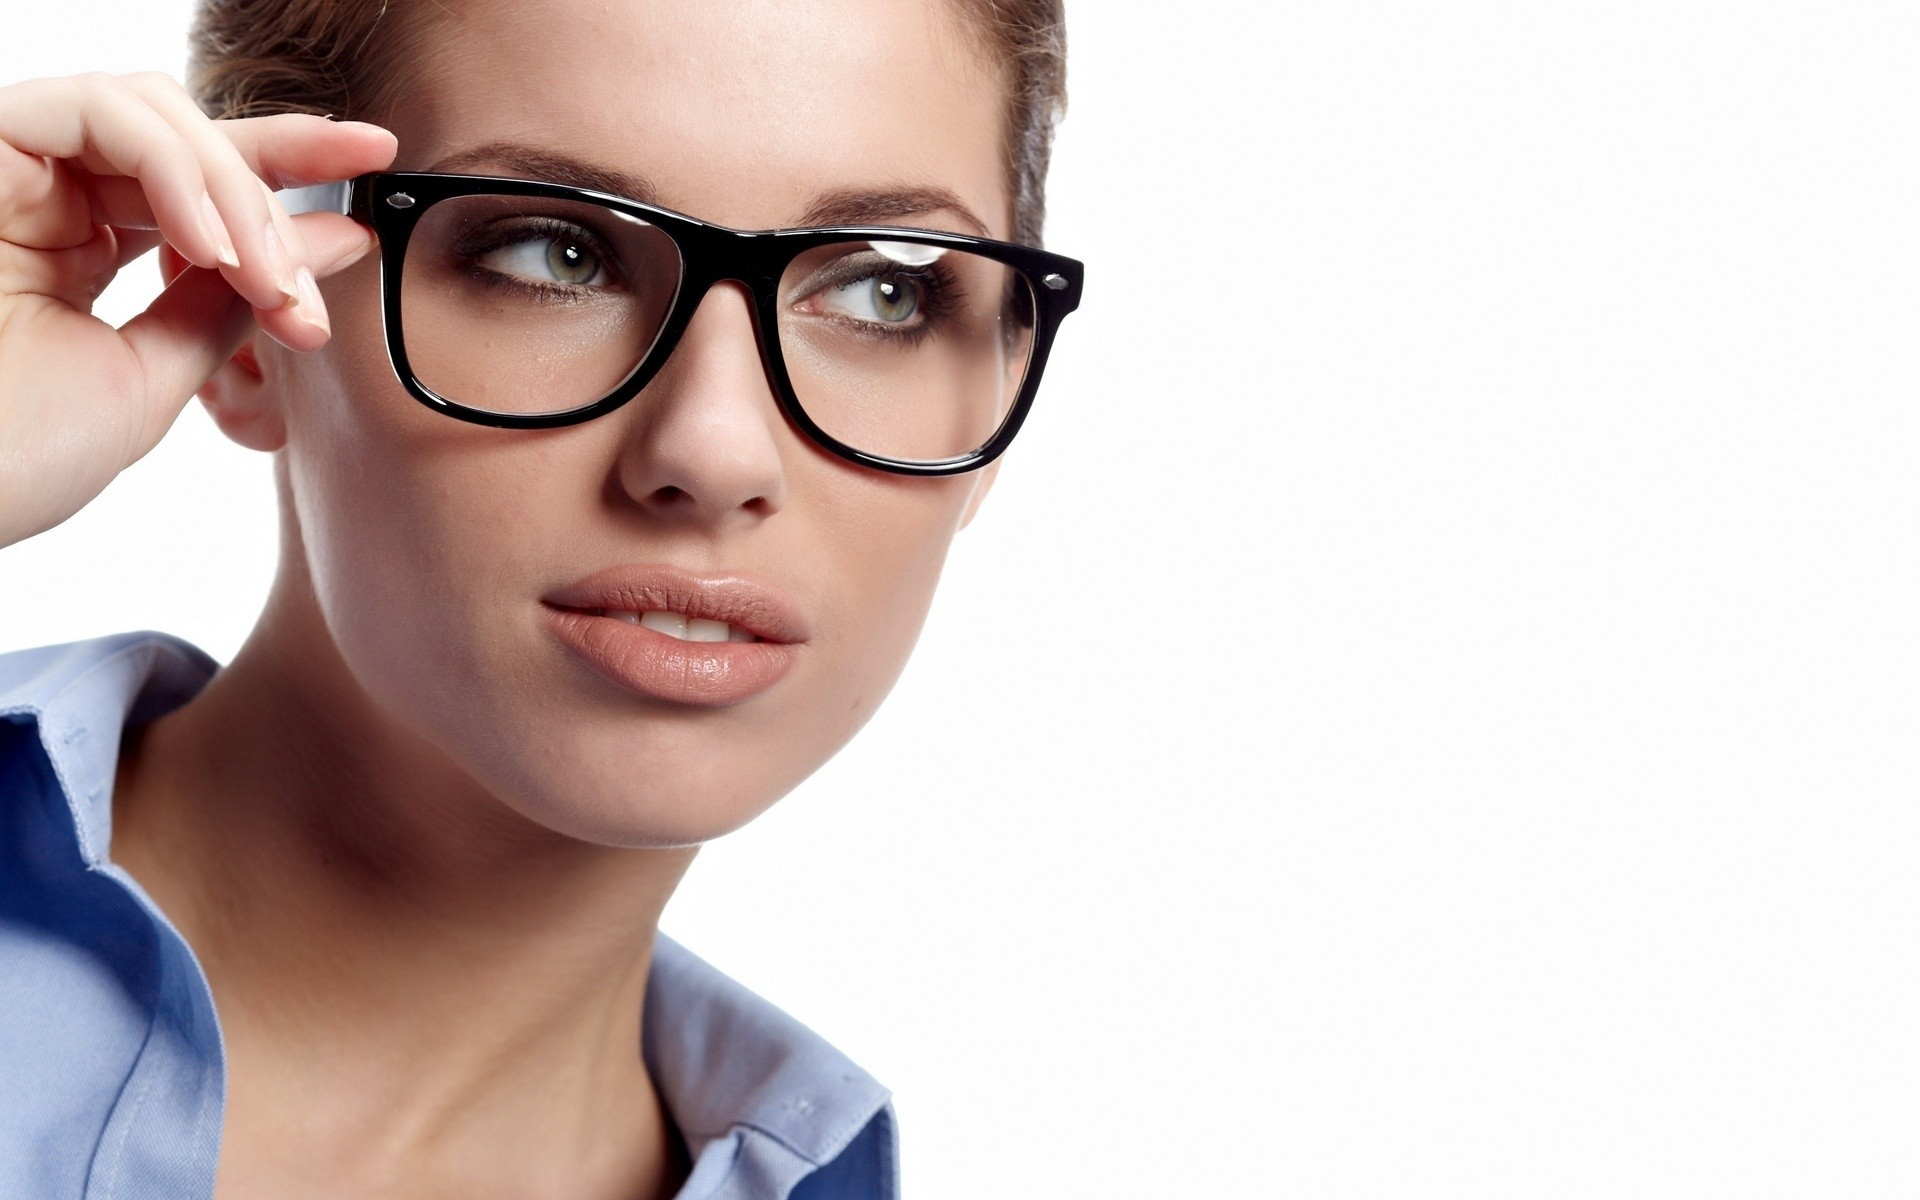 glasses-wallpapers-28604-9426480